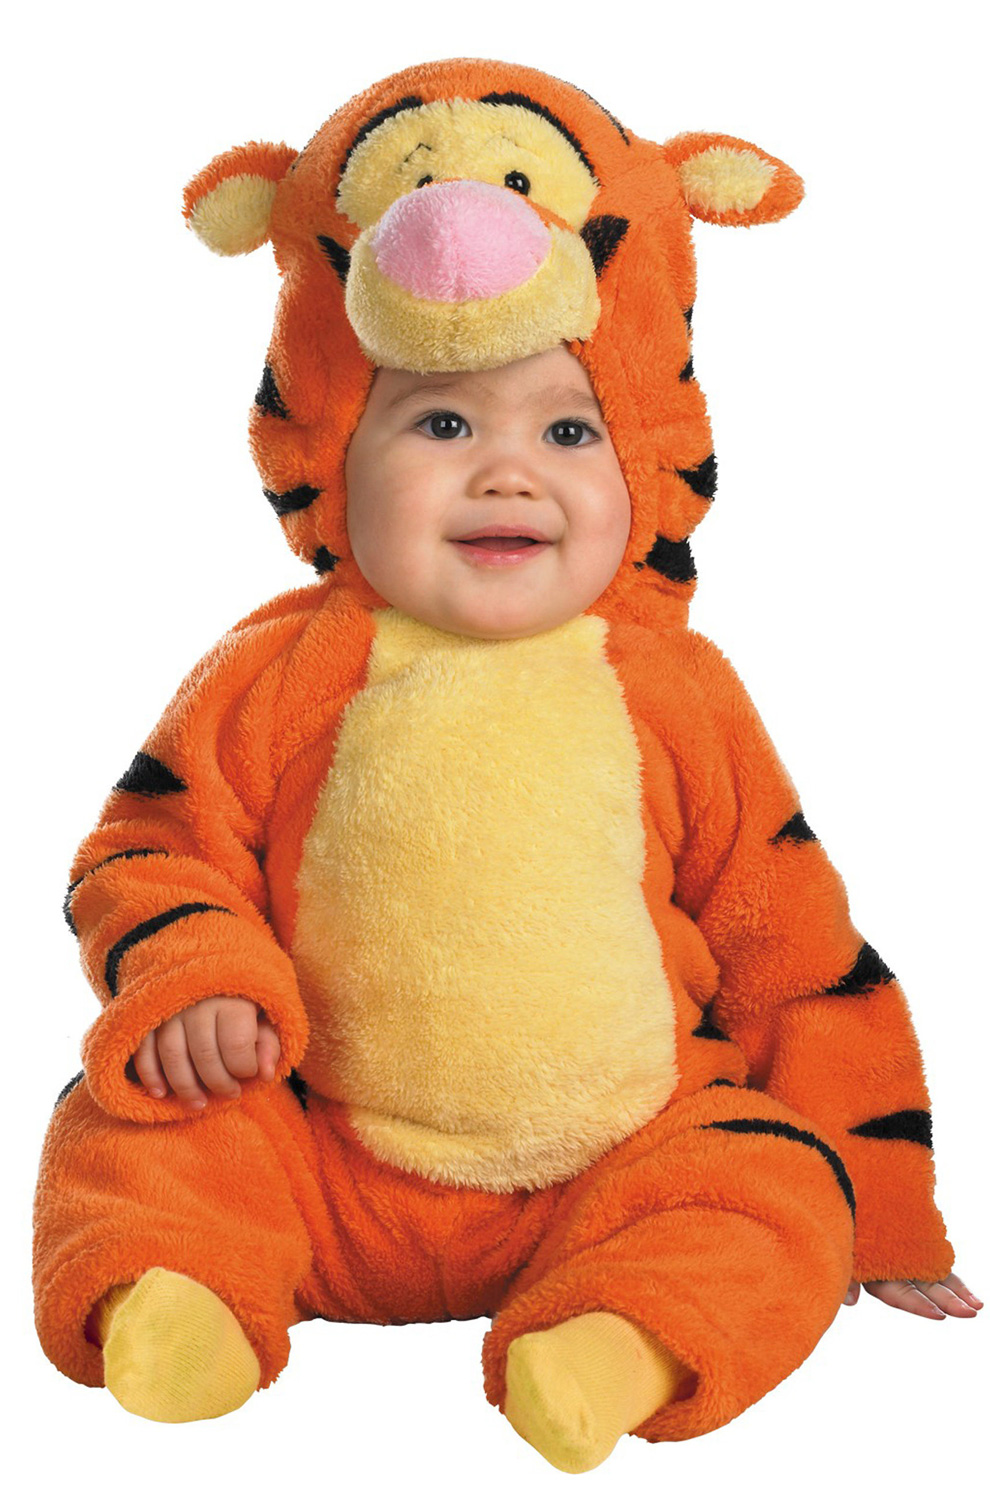 Disney Winnie The Pooh Tigger Deluxe Two-Sided Plush